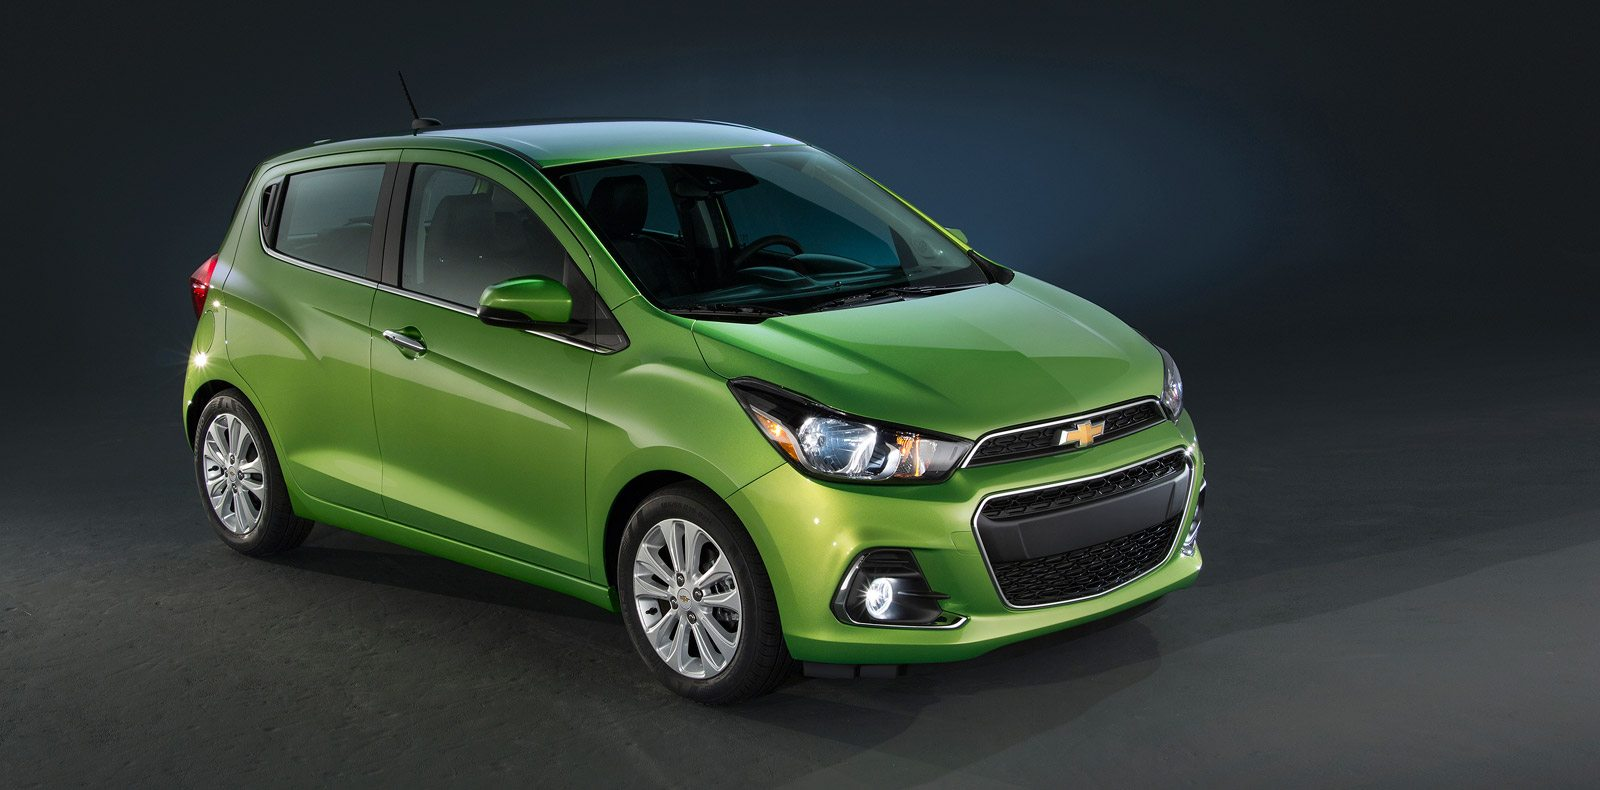 territory is the chevrolet spark with its 1 4 liter ecotec four cylinder engine generating 98 hp and 94 lb ft of torque its fuel economy comes in at